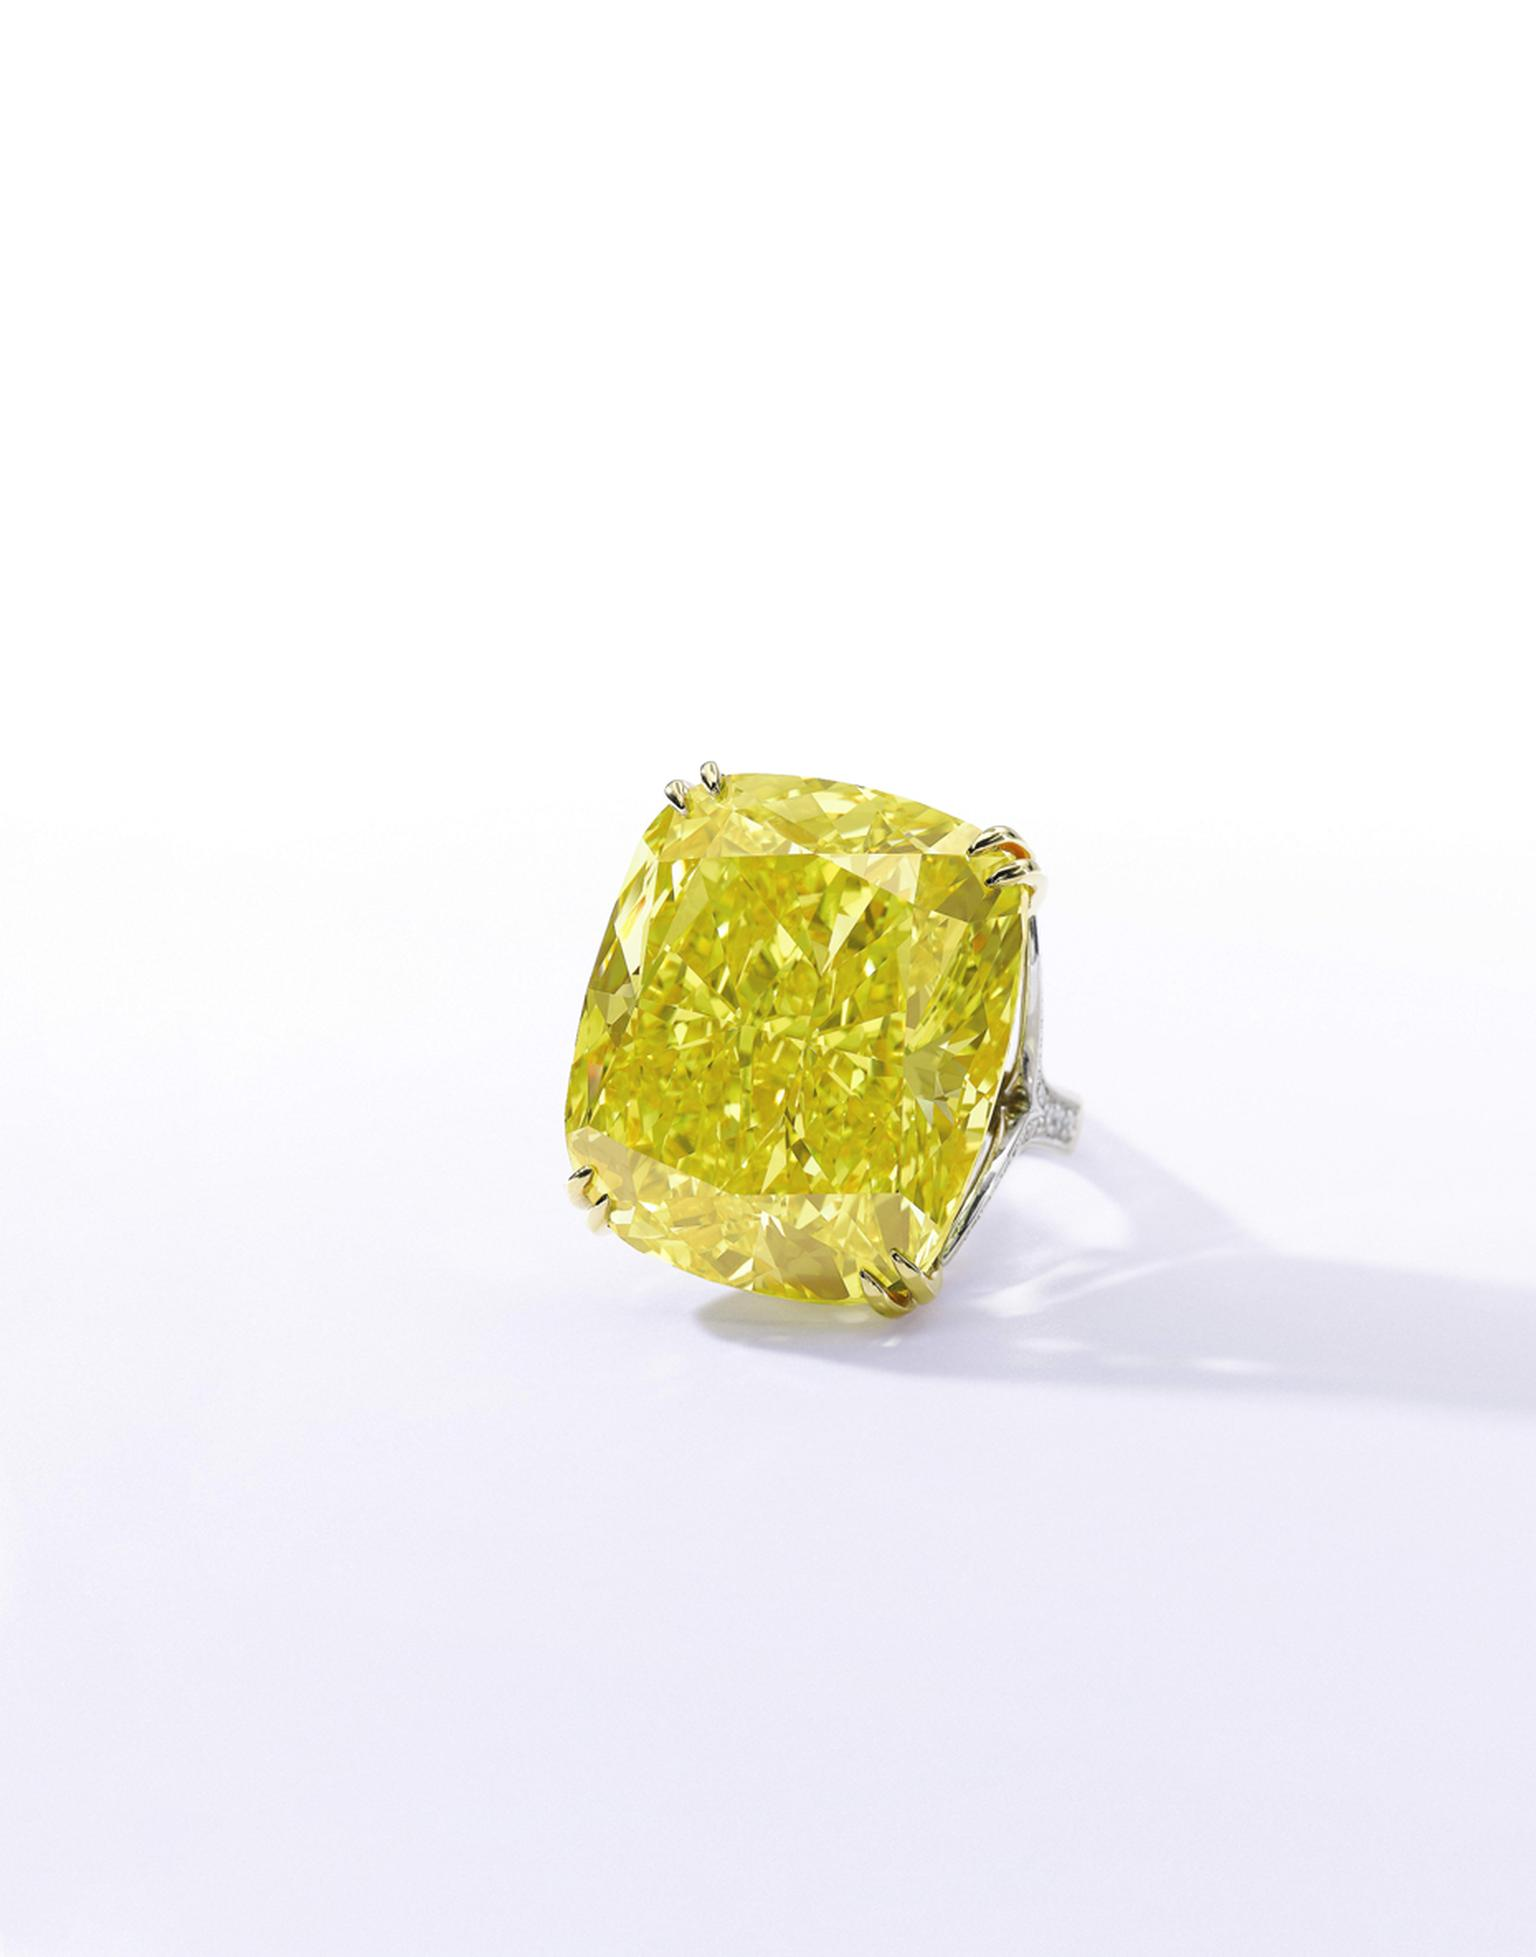 The 100.09ct Graff Vivid Yellow diamond features a Fancy Vivid Yellow, Natural Colour, VS2 Clarity diamond. Sold for CHF 14.5million (estimate: CHF 13.4- 22.3million). Image by: Sothebys.